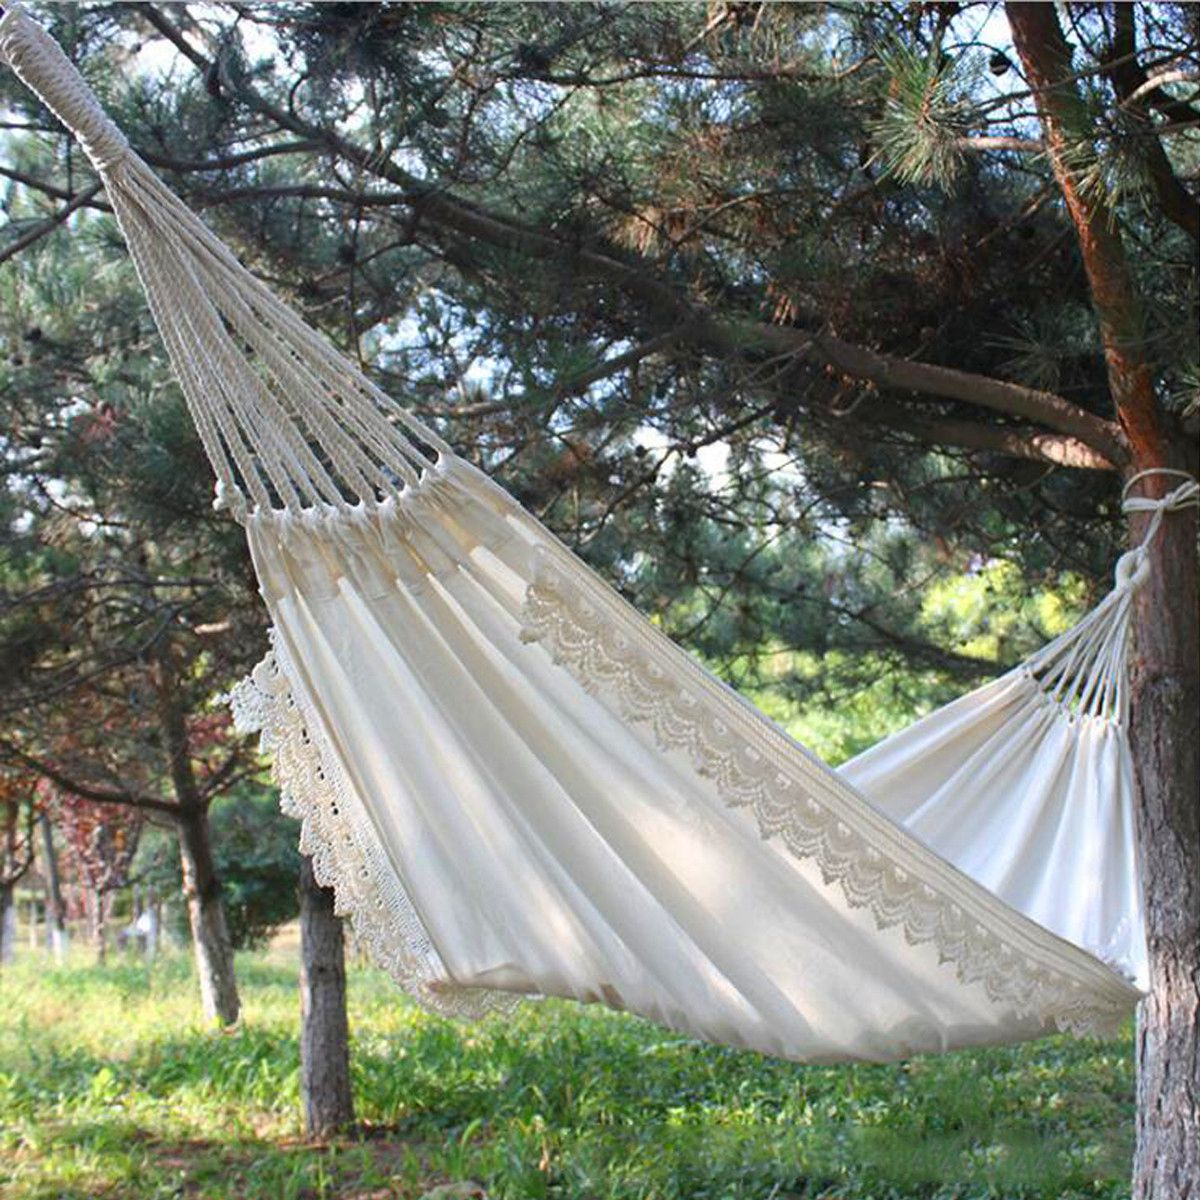 LUDA Outdoor Camping Hammock Swing Portable Hanging Chair Pure White Romantic Lace For Travel Hiking Garden Sleeping Swing Por